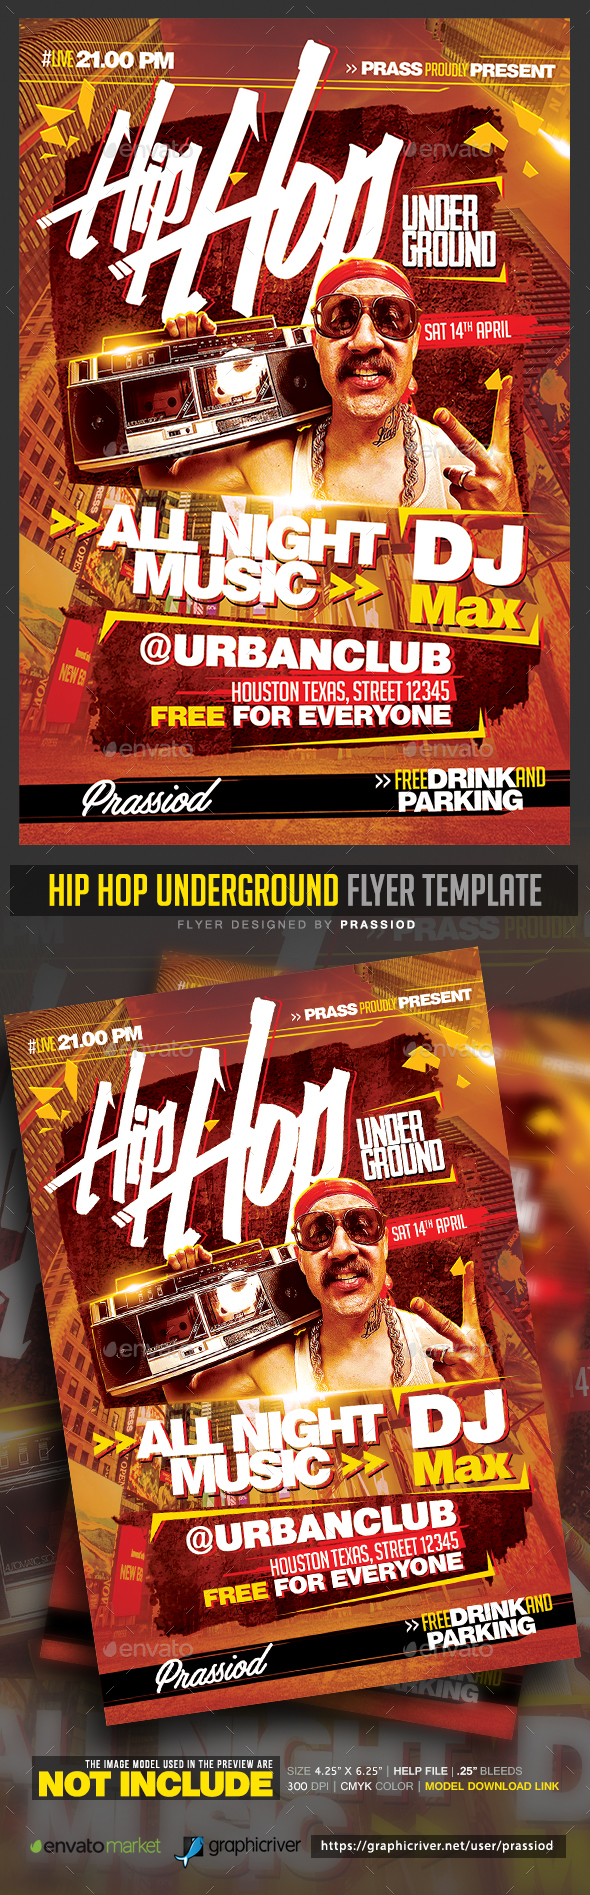 Hip Hop Underground Flyer Template - Clubs & Parties Events